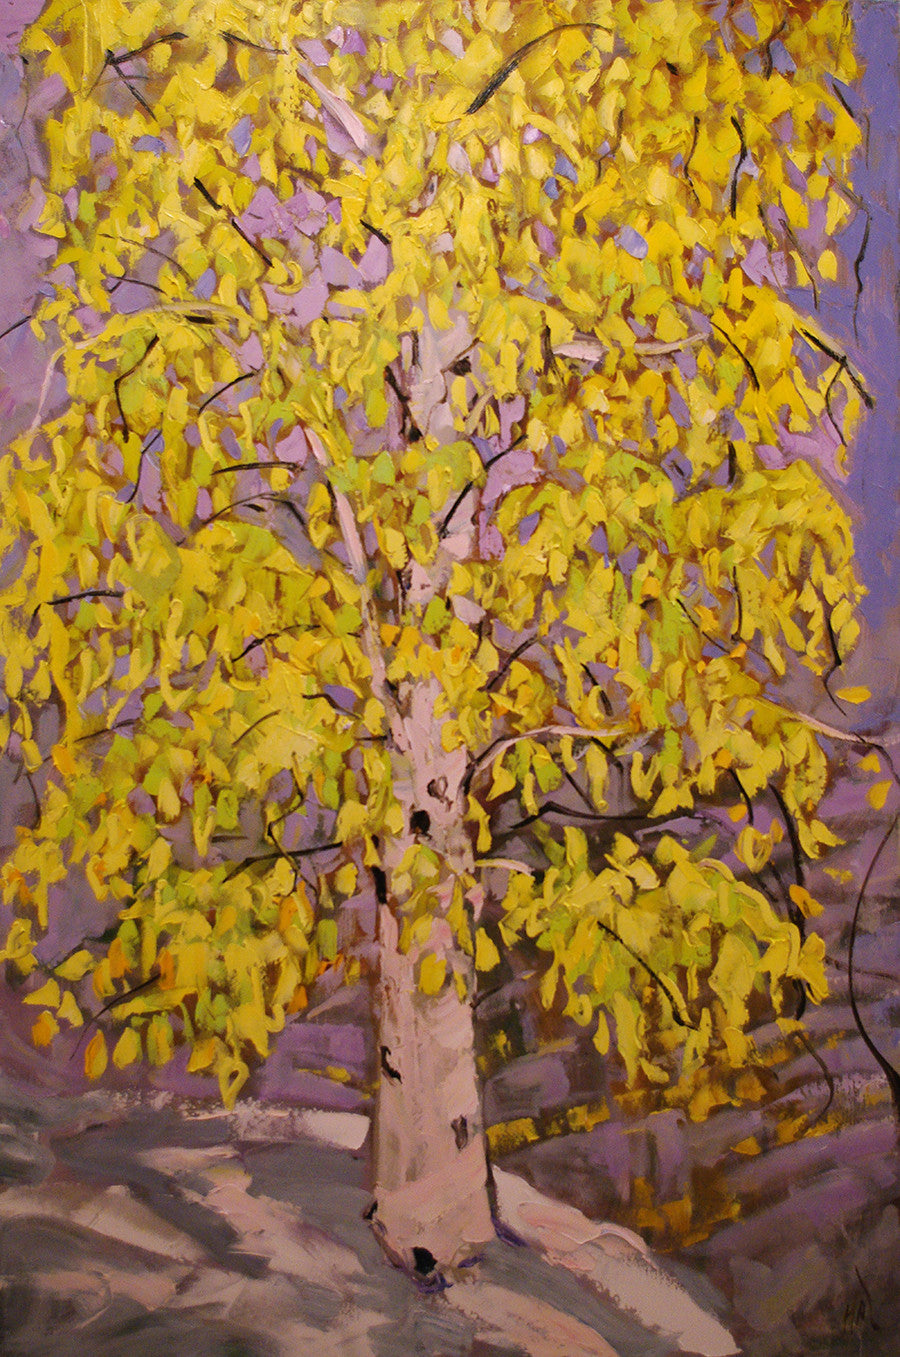 Cadmium Birch - Halin de Repentigny - painting